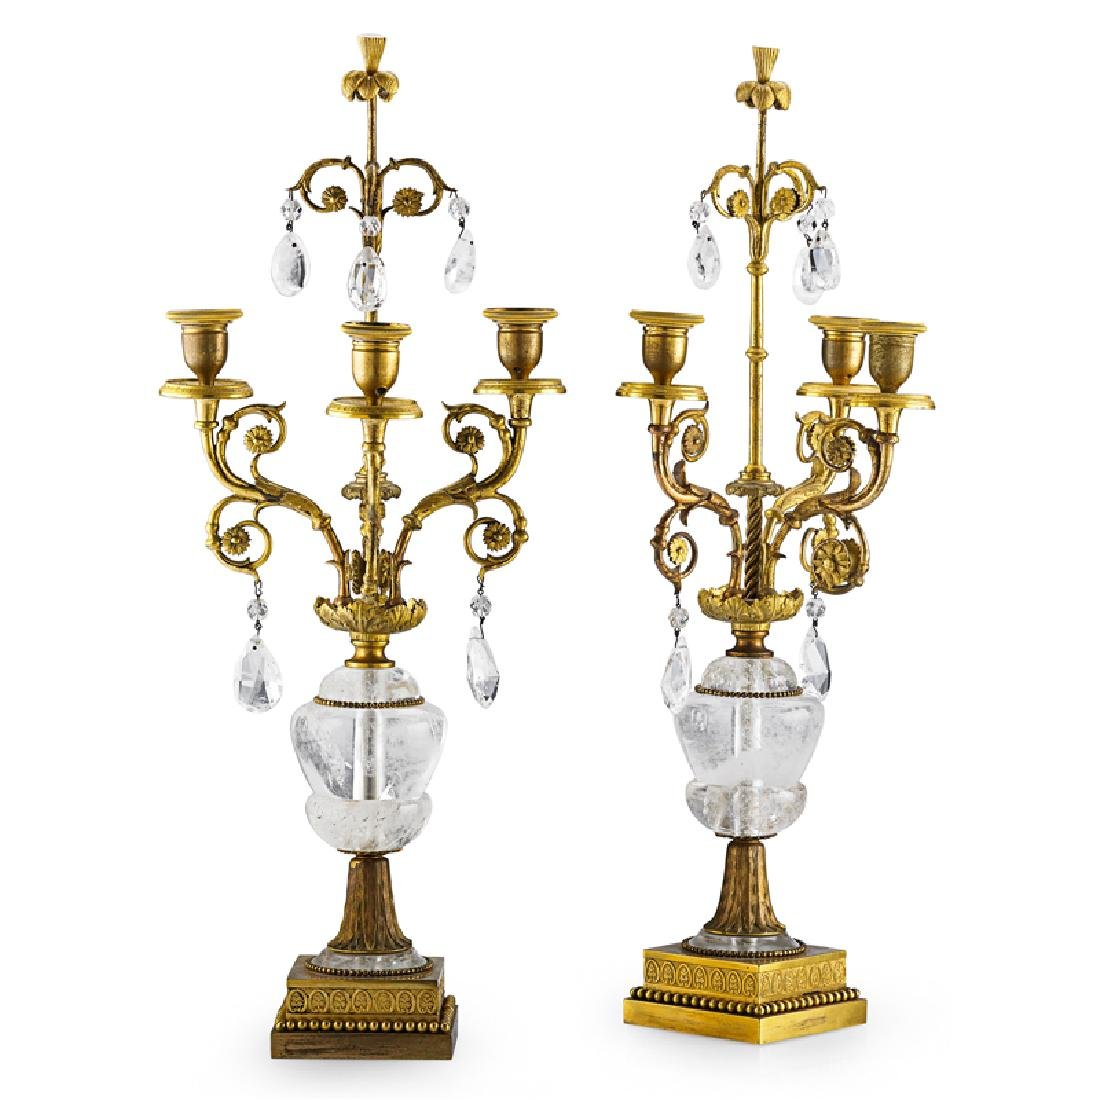 PAIR OF ROCK CRYSTAL AND GILT BRONZE CANDELABRA